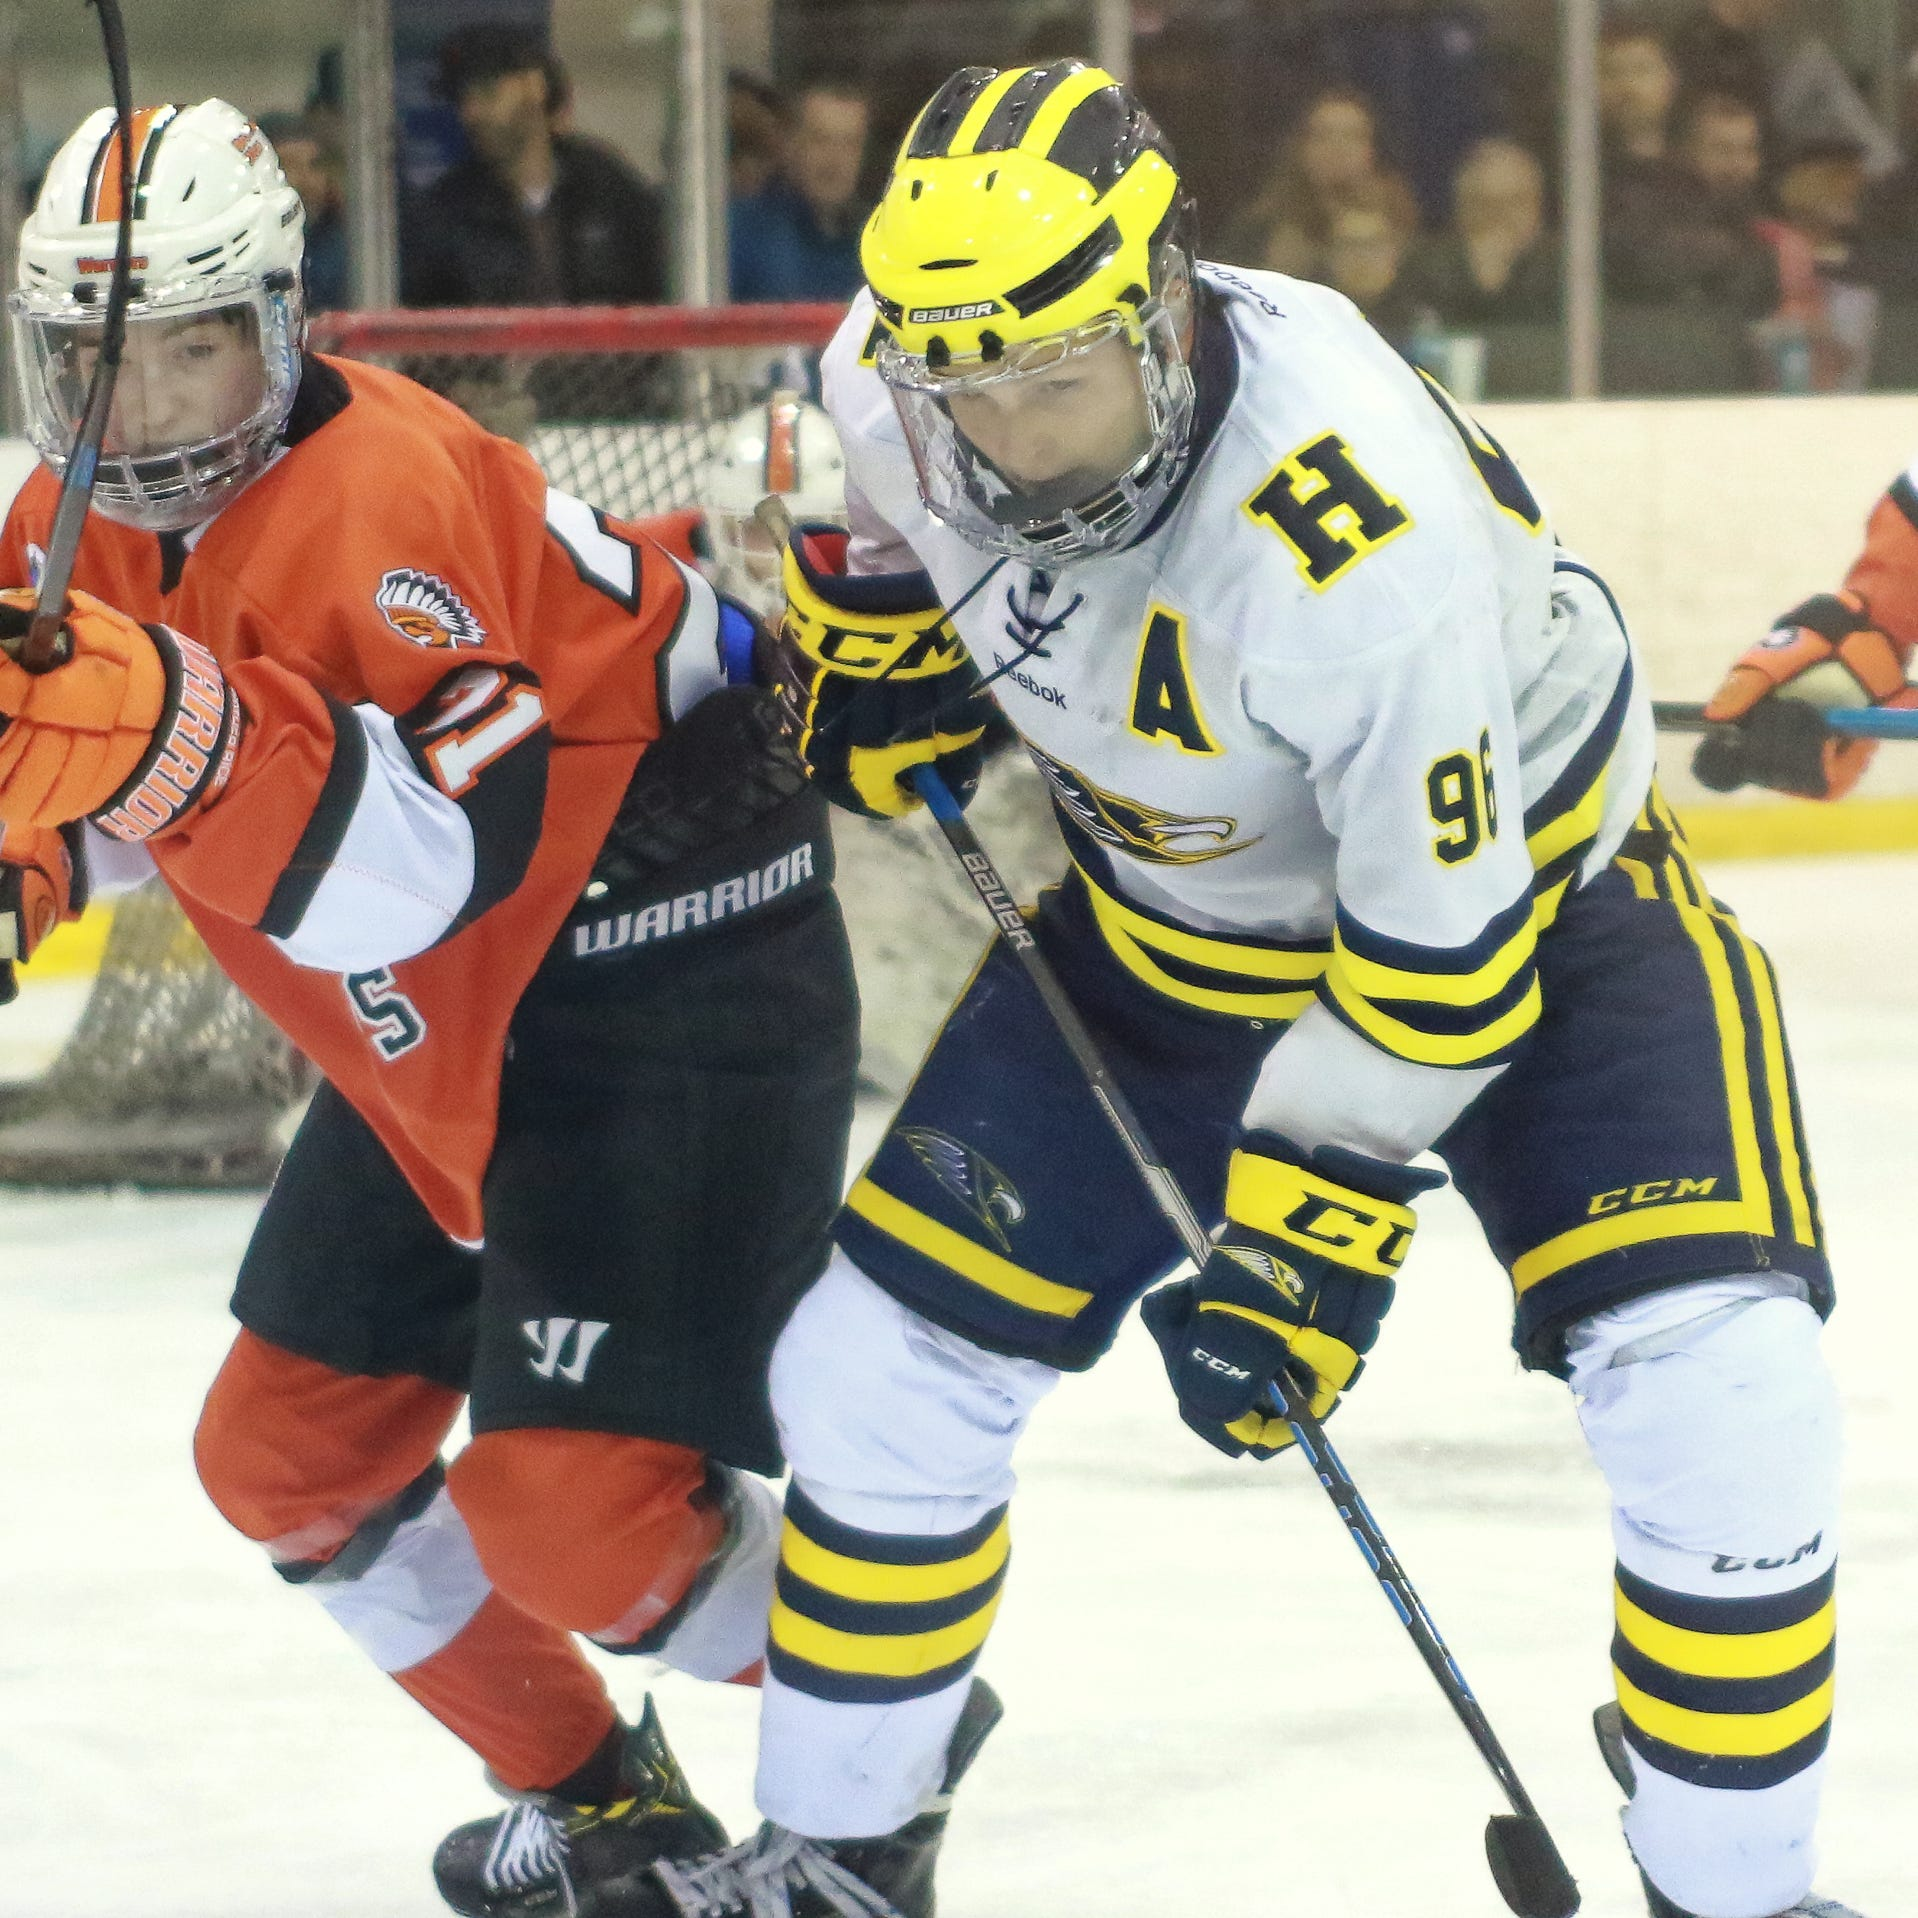 Hartland makes statement with 5-1 hockey win over Brother Rice